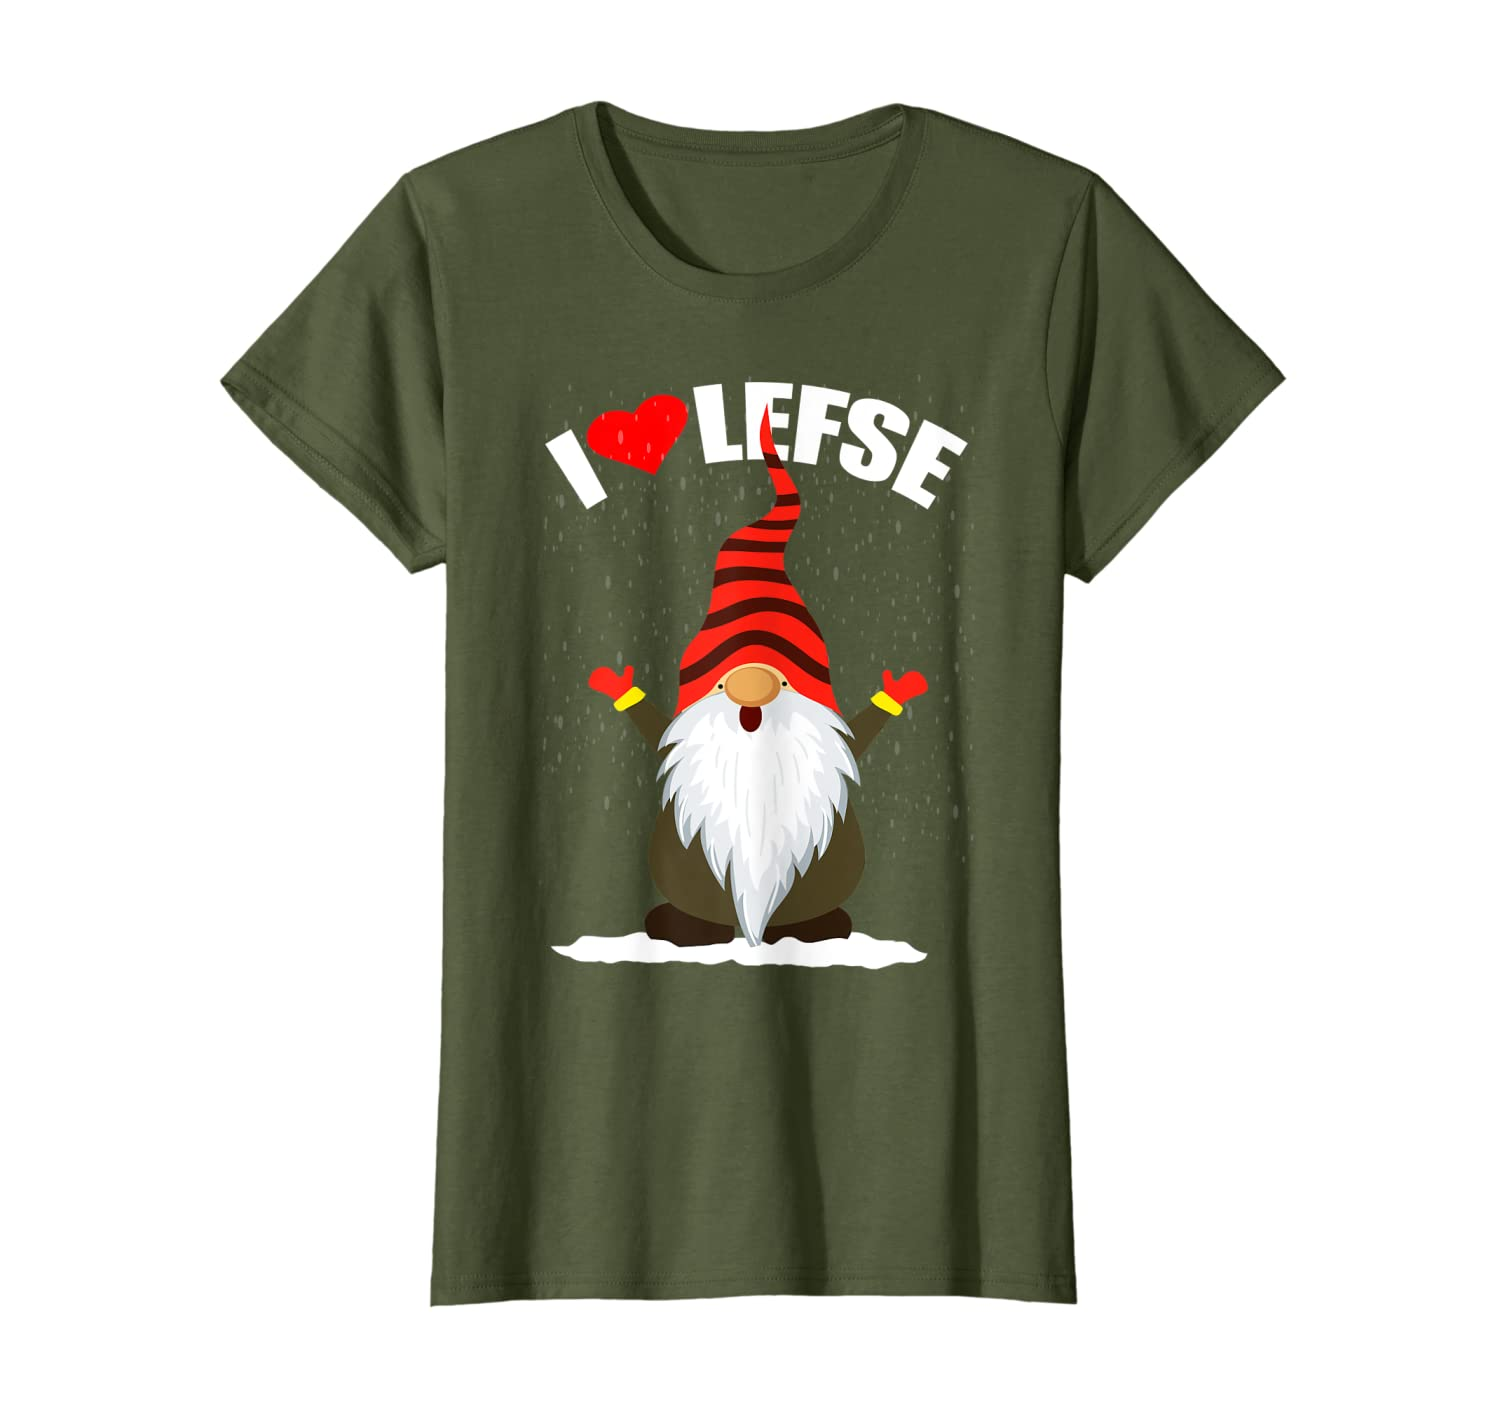 Lefse Tomte Gnome Christmas Gift Scandinavian Gnome Baking T-Shirt-TH